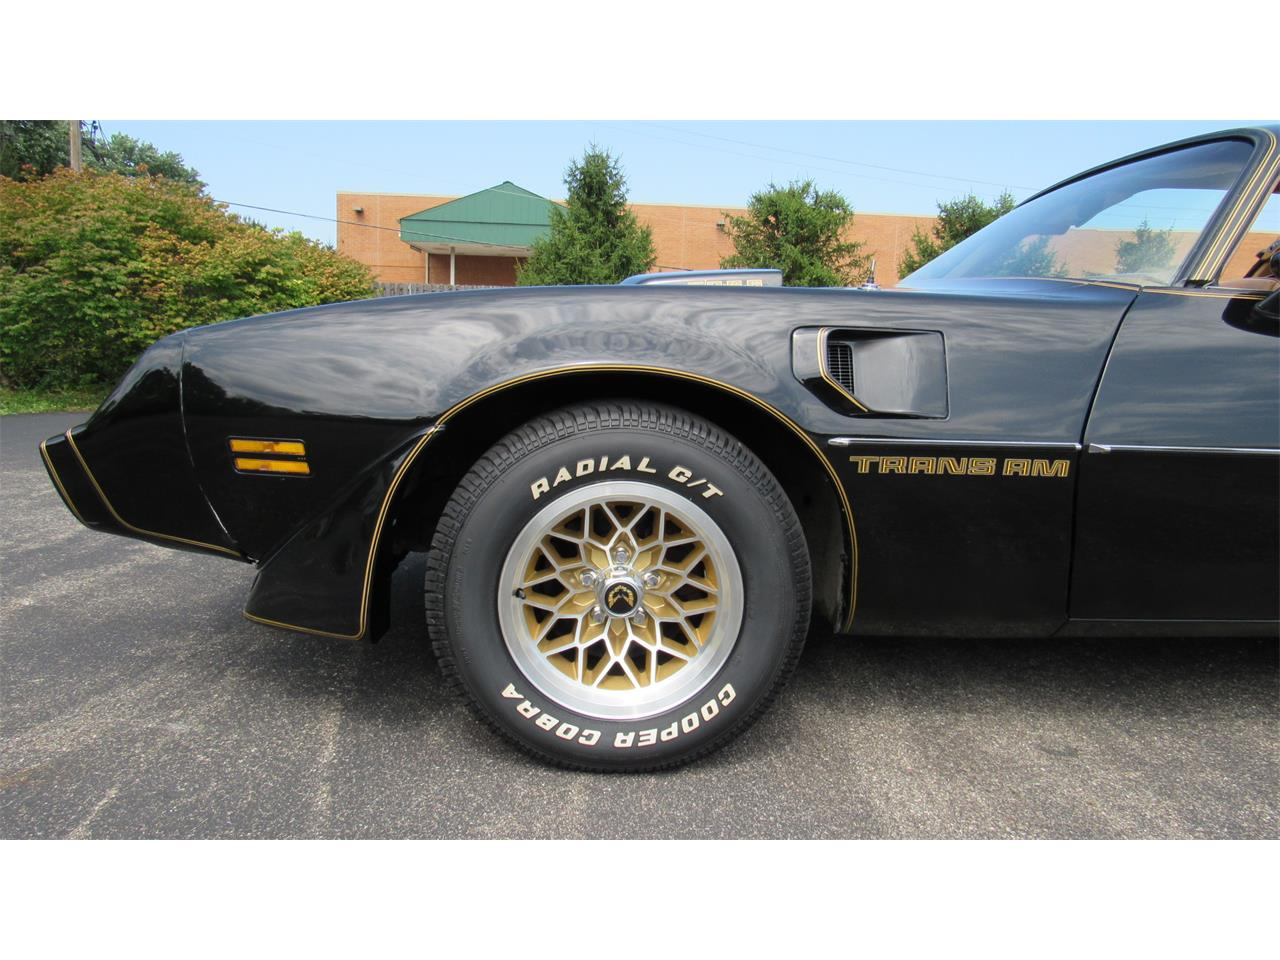 1979 Pontiac Firebird Trans Am for sale in Milford, OH – photo 35